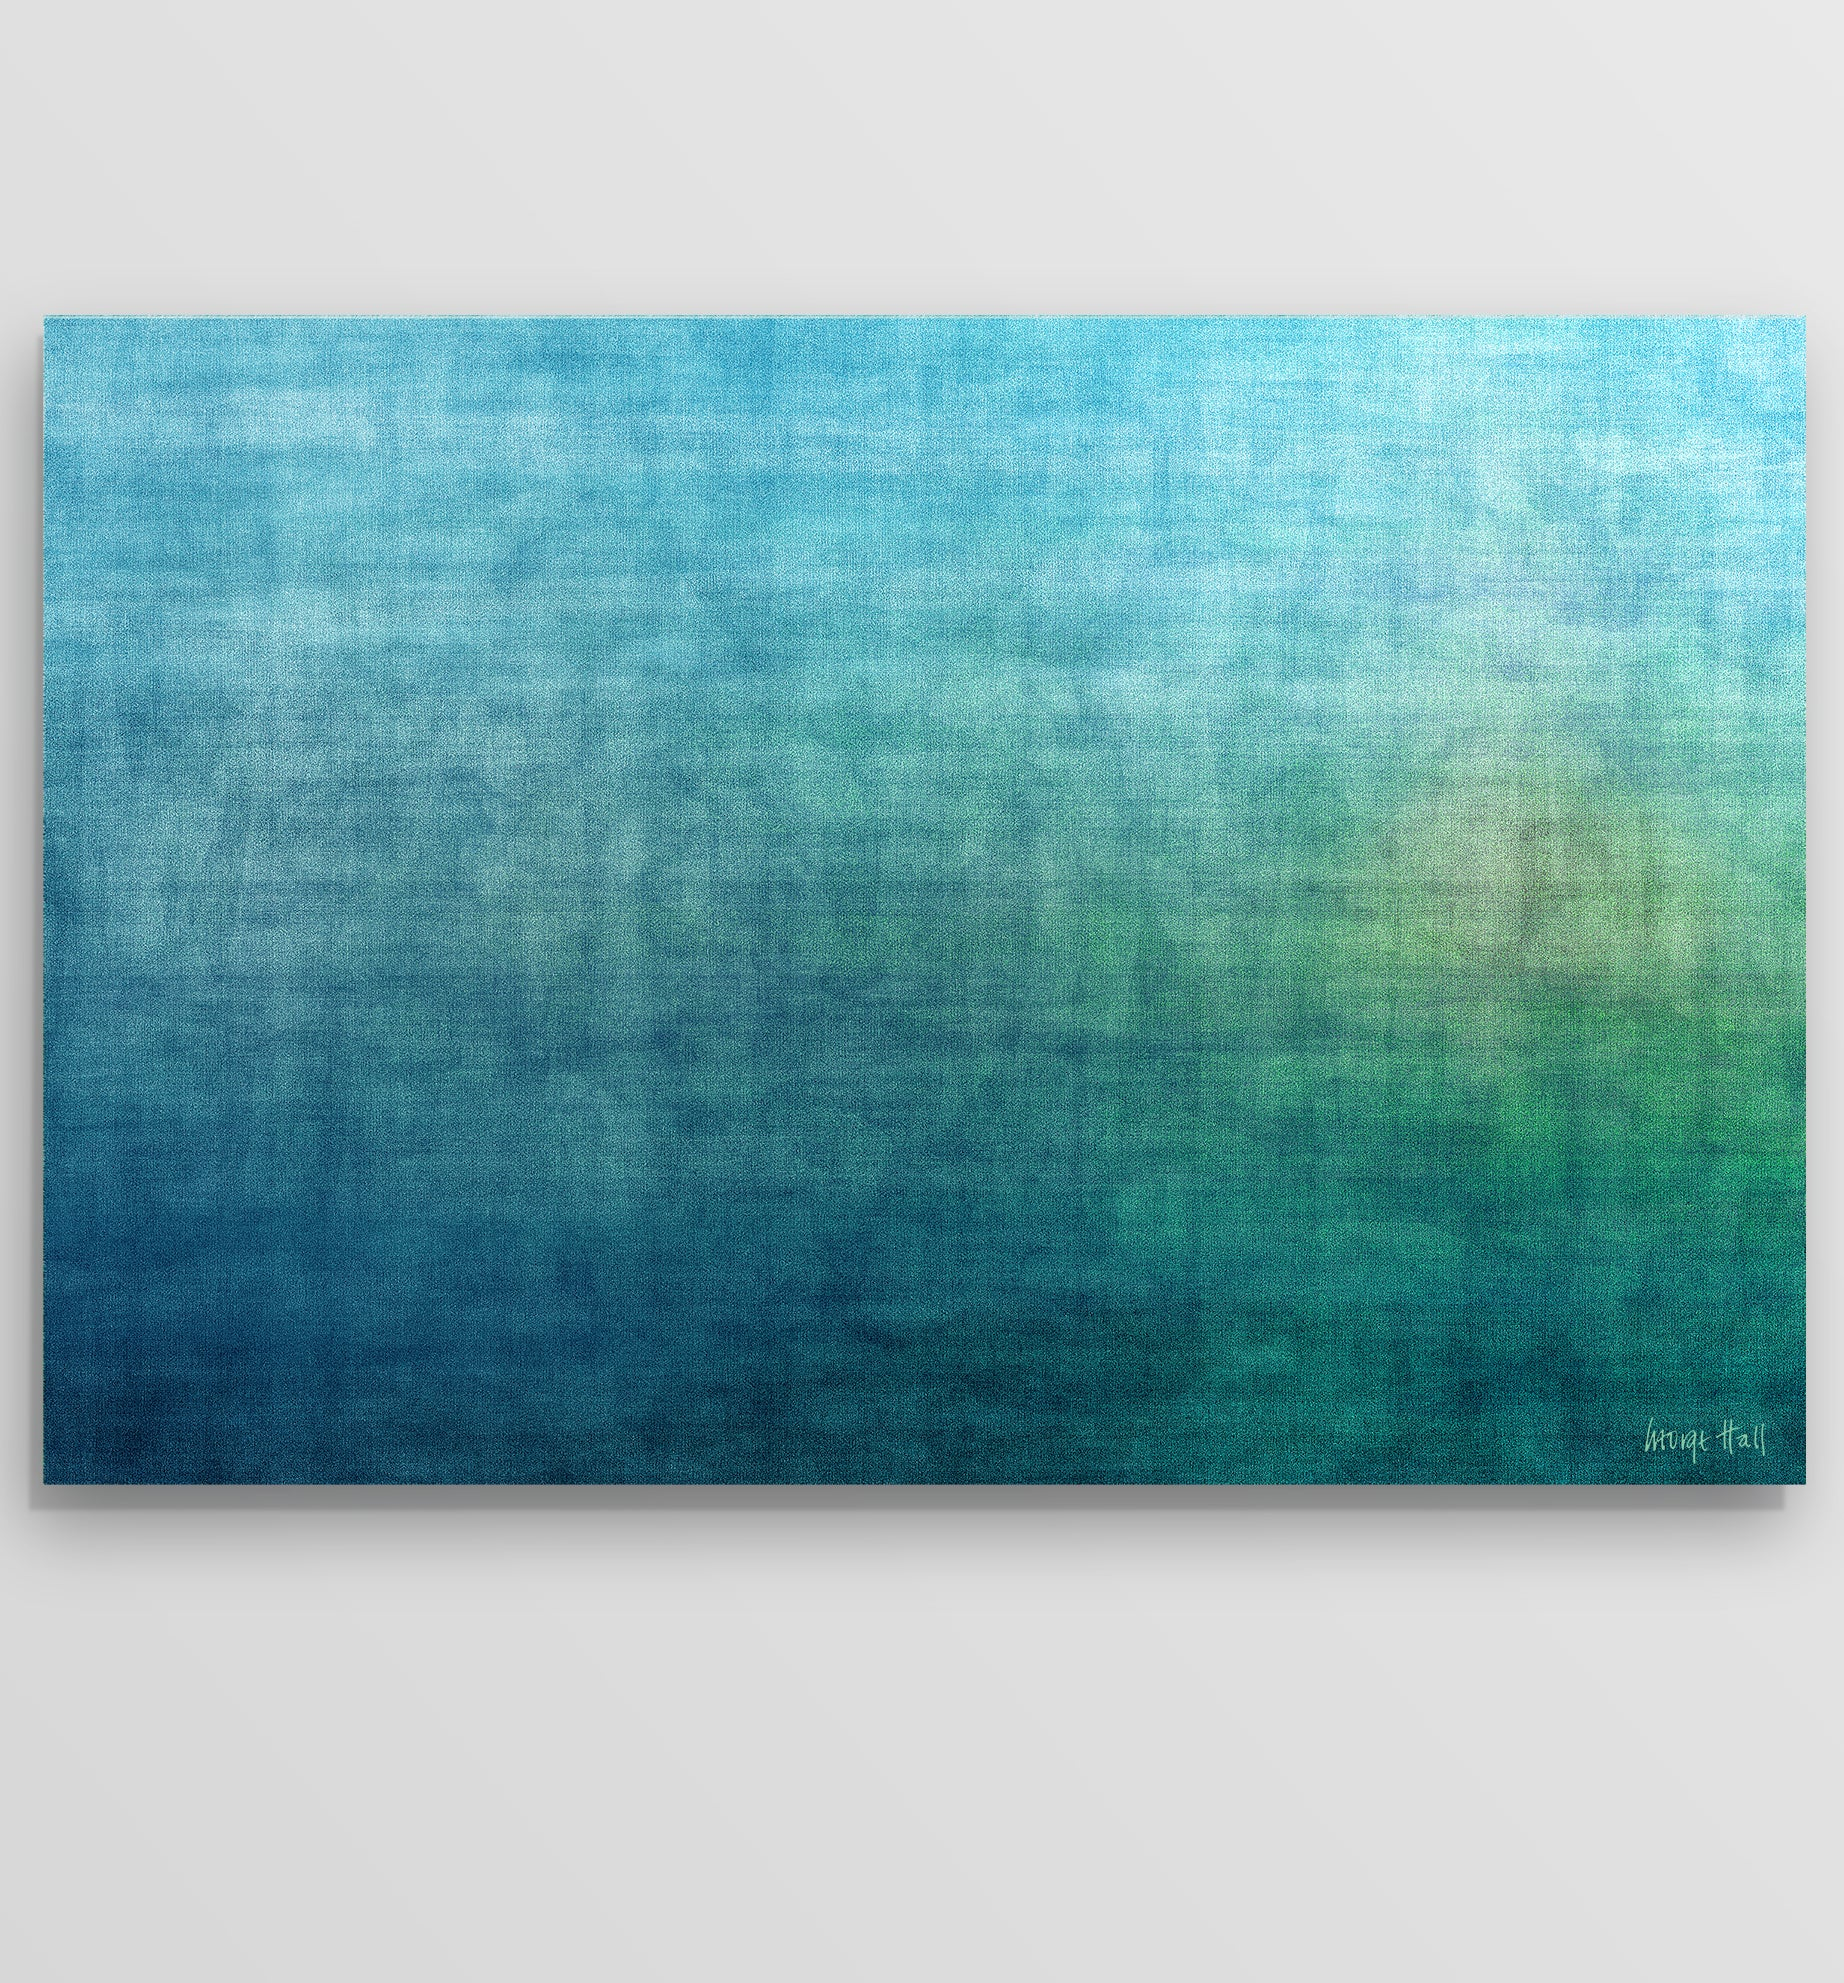 Gradual Morning- Ltd Ed Print - 122 x 81cm